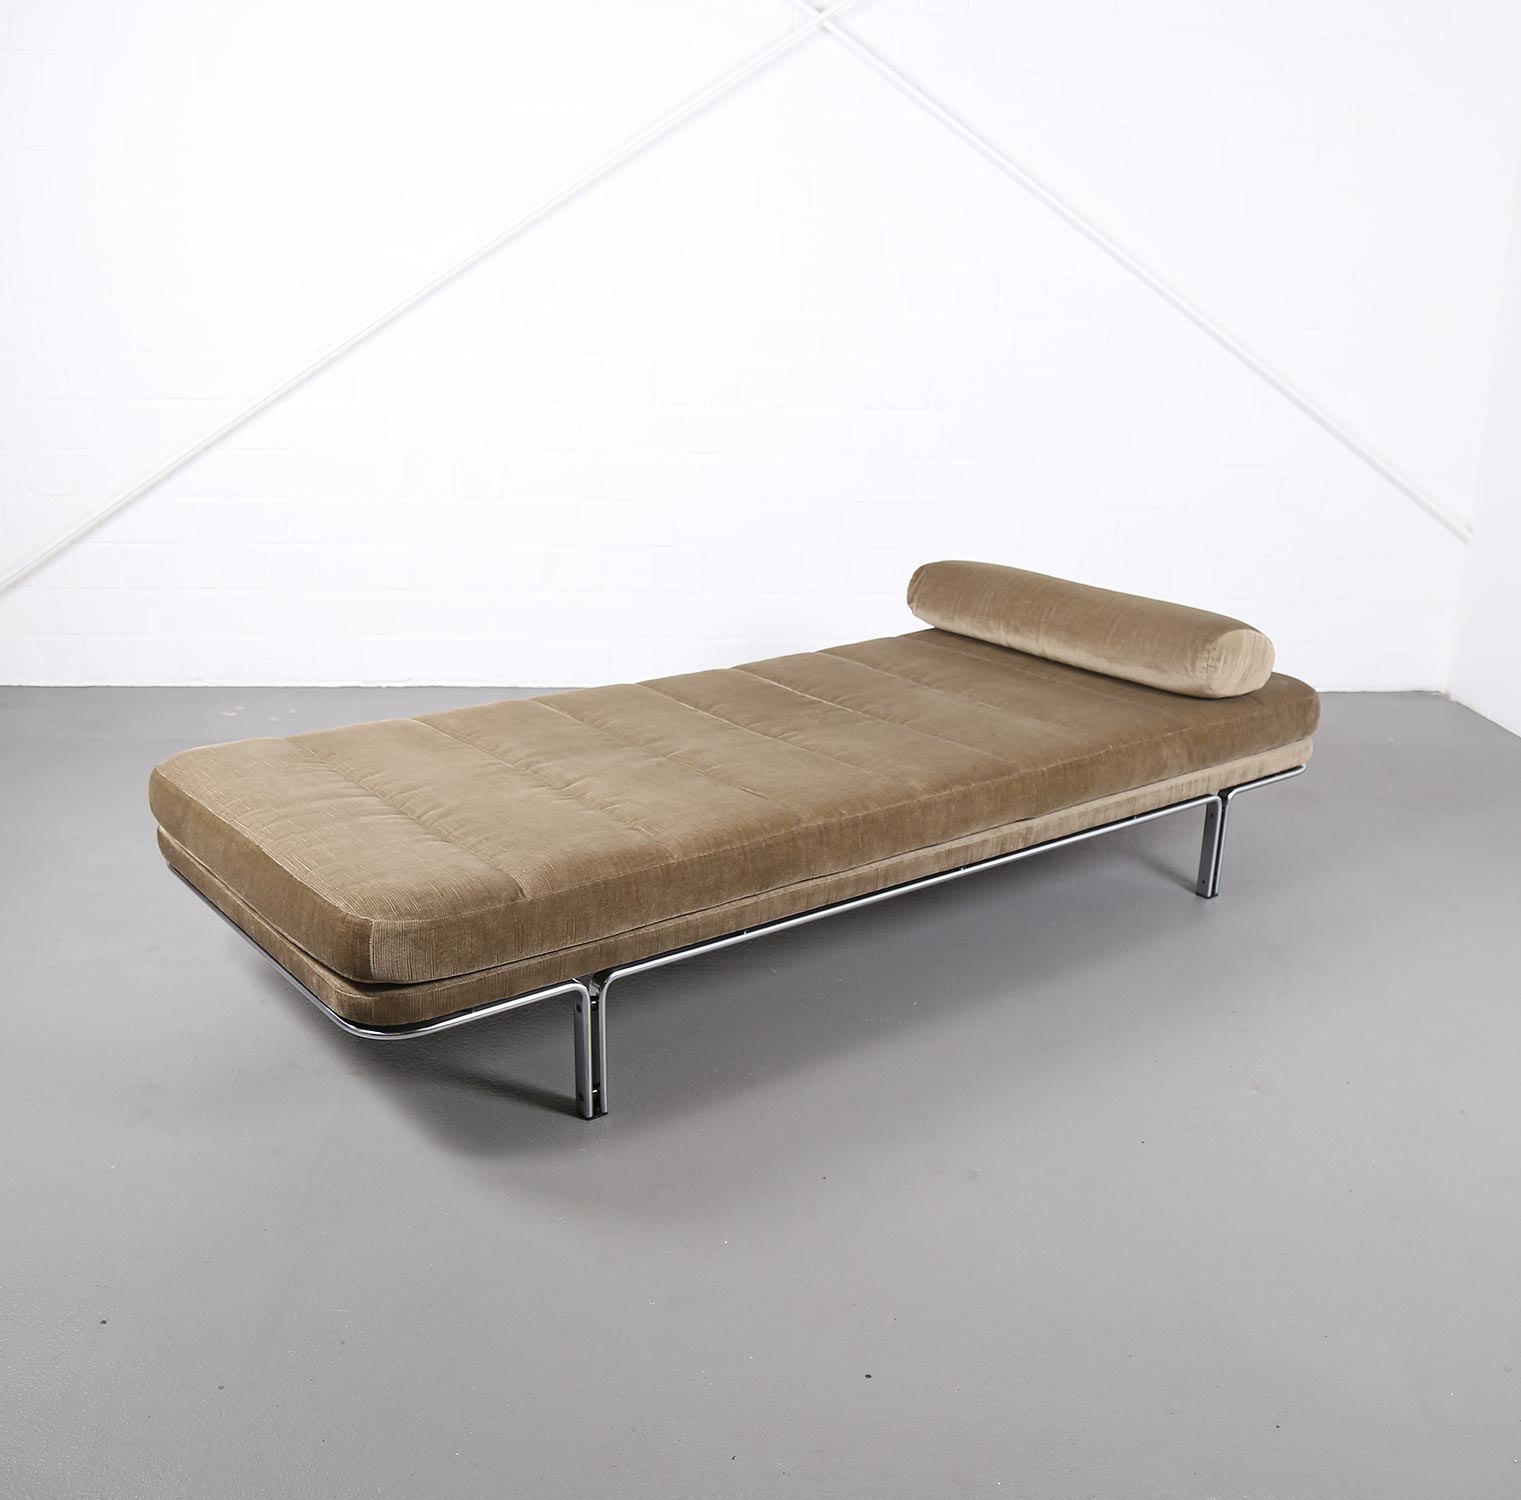 Horst Brüning Daybed Modell 6915 Horst Brüning For Kill International